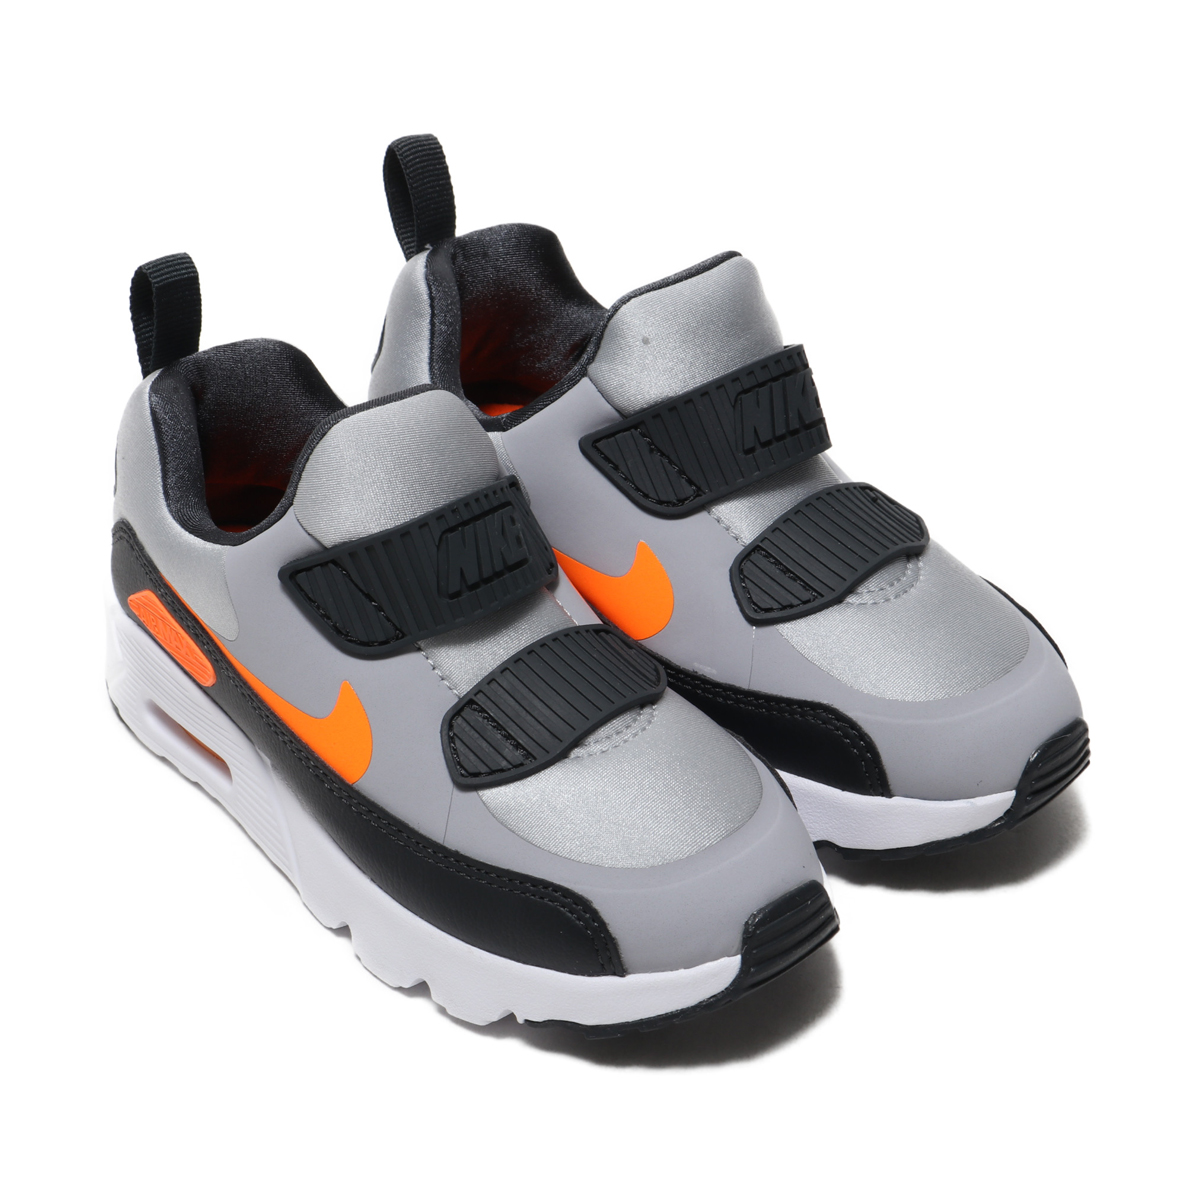 NIKE AIR MAX TINY 90 (PS)(ナイキ エア マックス タイニー 90 PS)WOLF GREY/TOTAL ORANGE-ANTHRACITE-WHITE【キッズ スニーカー】18FA-I